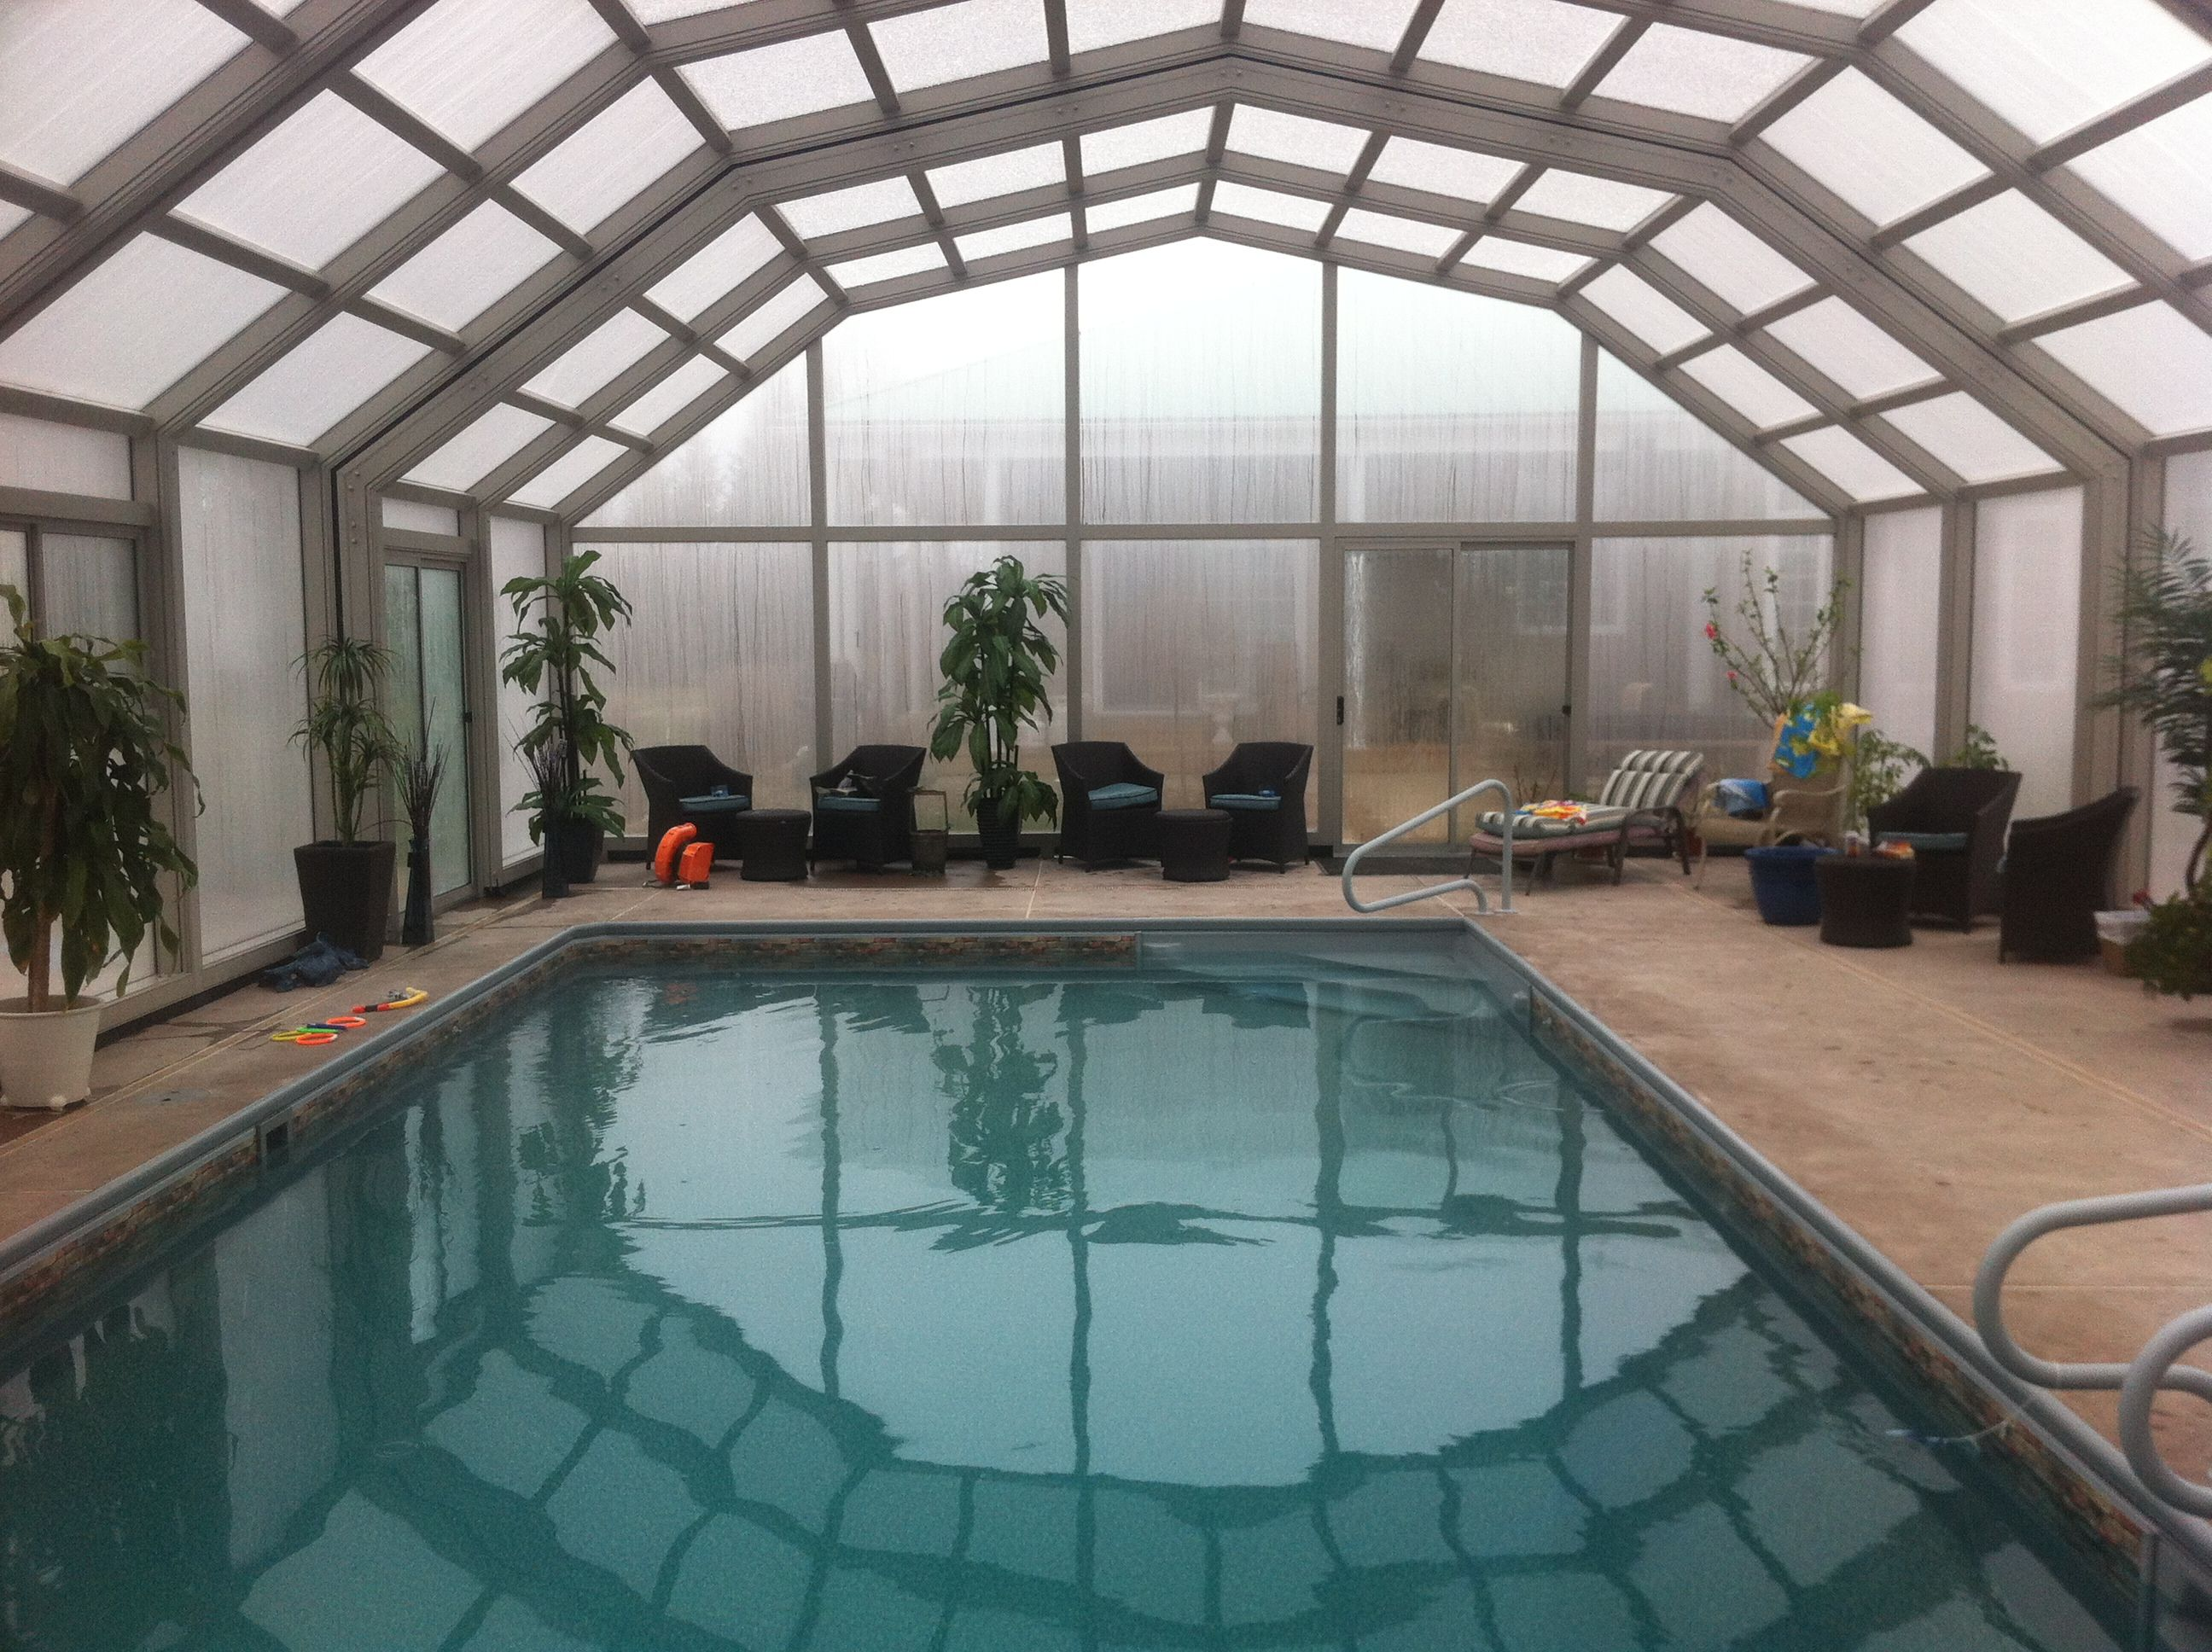 Covers In Play S Retractable Pool Enclosures Keep It Warm All Year Round Pool Enclosures Indoor Outdoor Pool Swimming Pool Enclosures